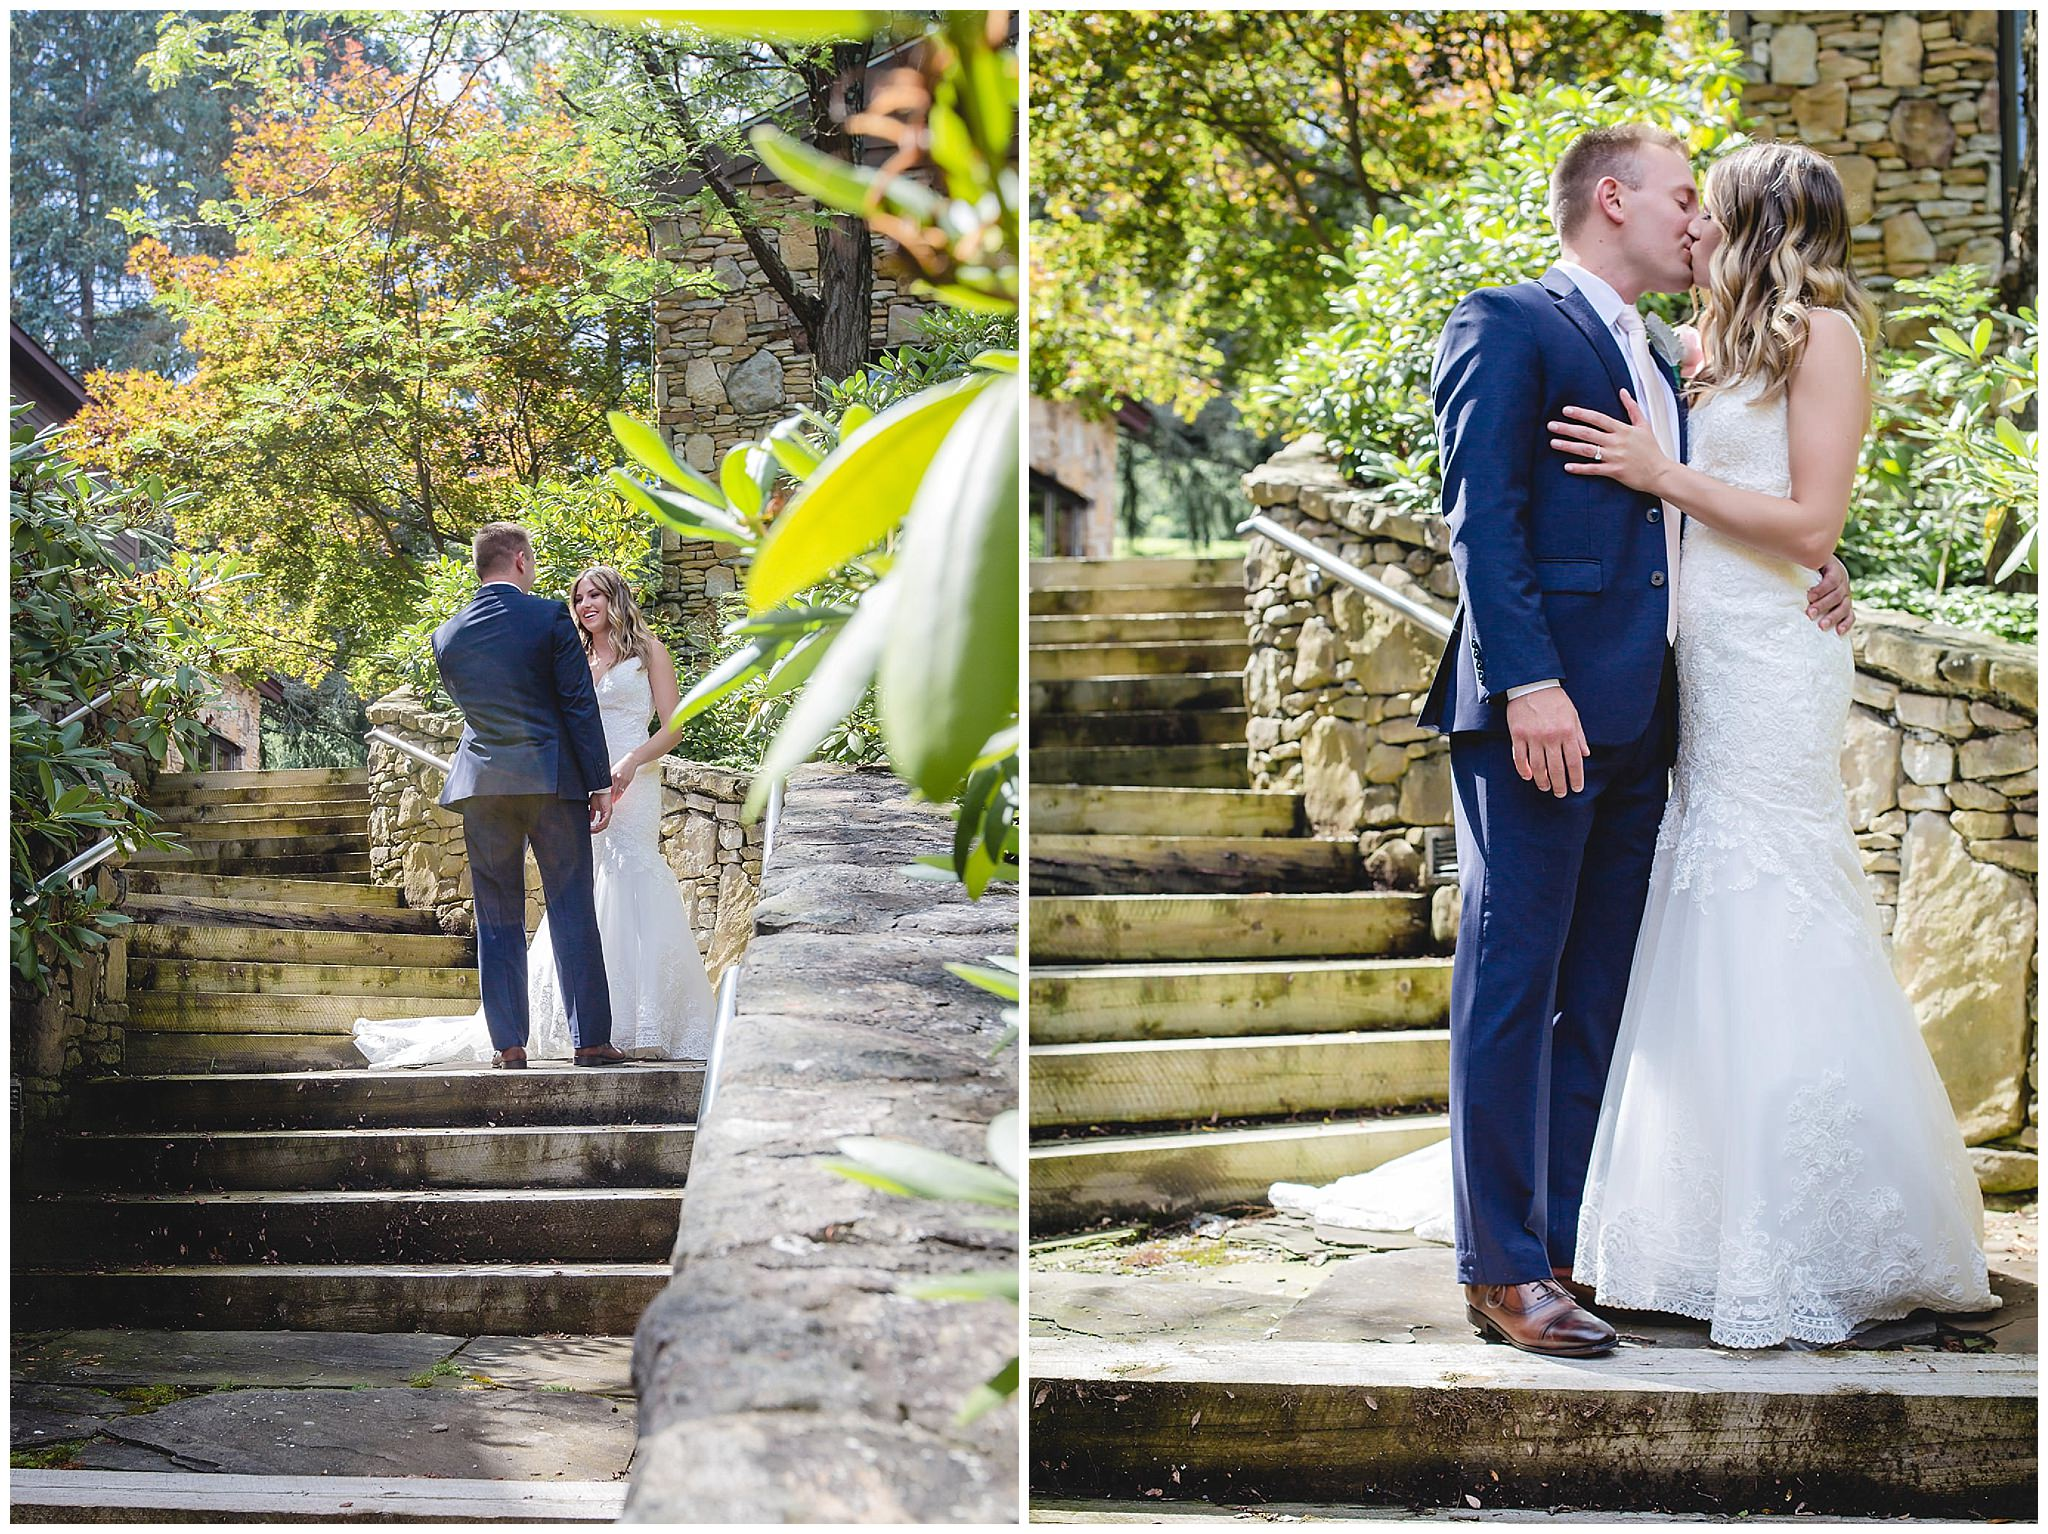 Bride and groom steal a kiss before their Hidden Valley Resort wedding ceremony